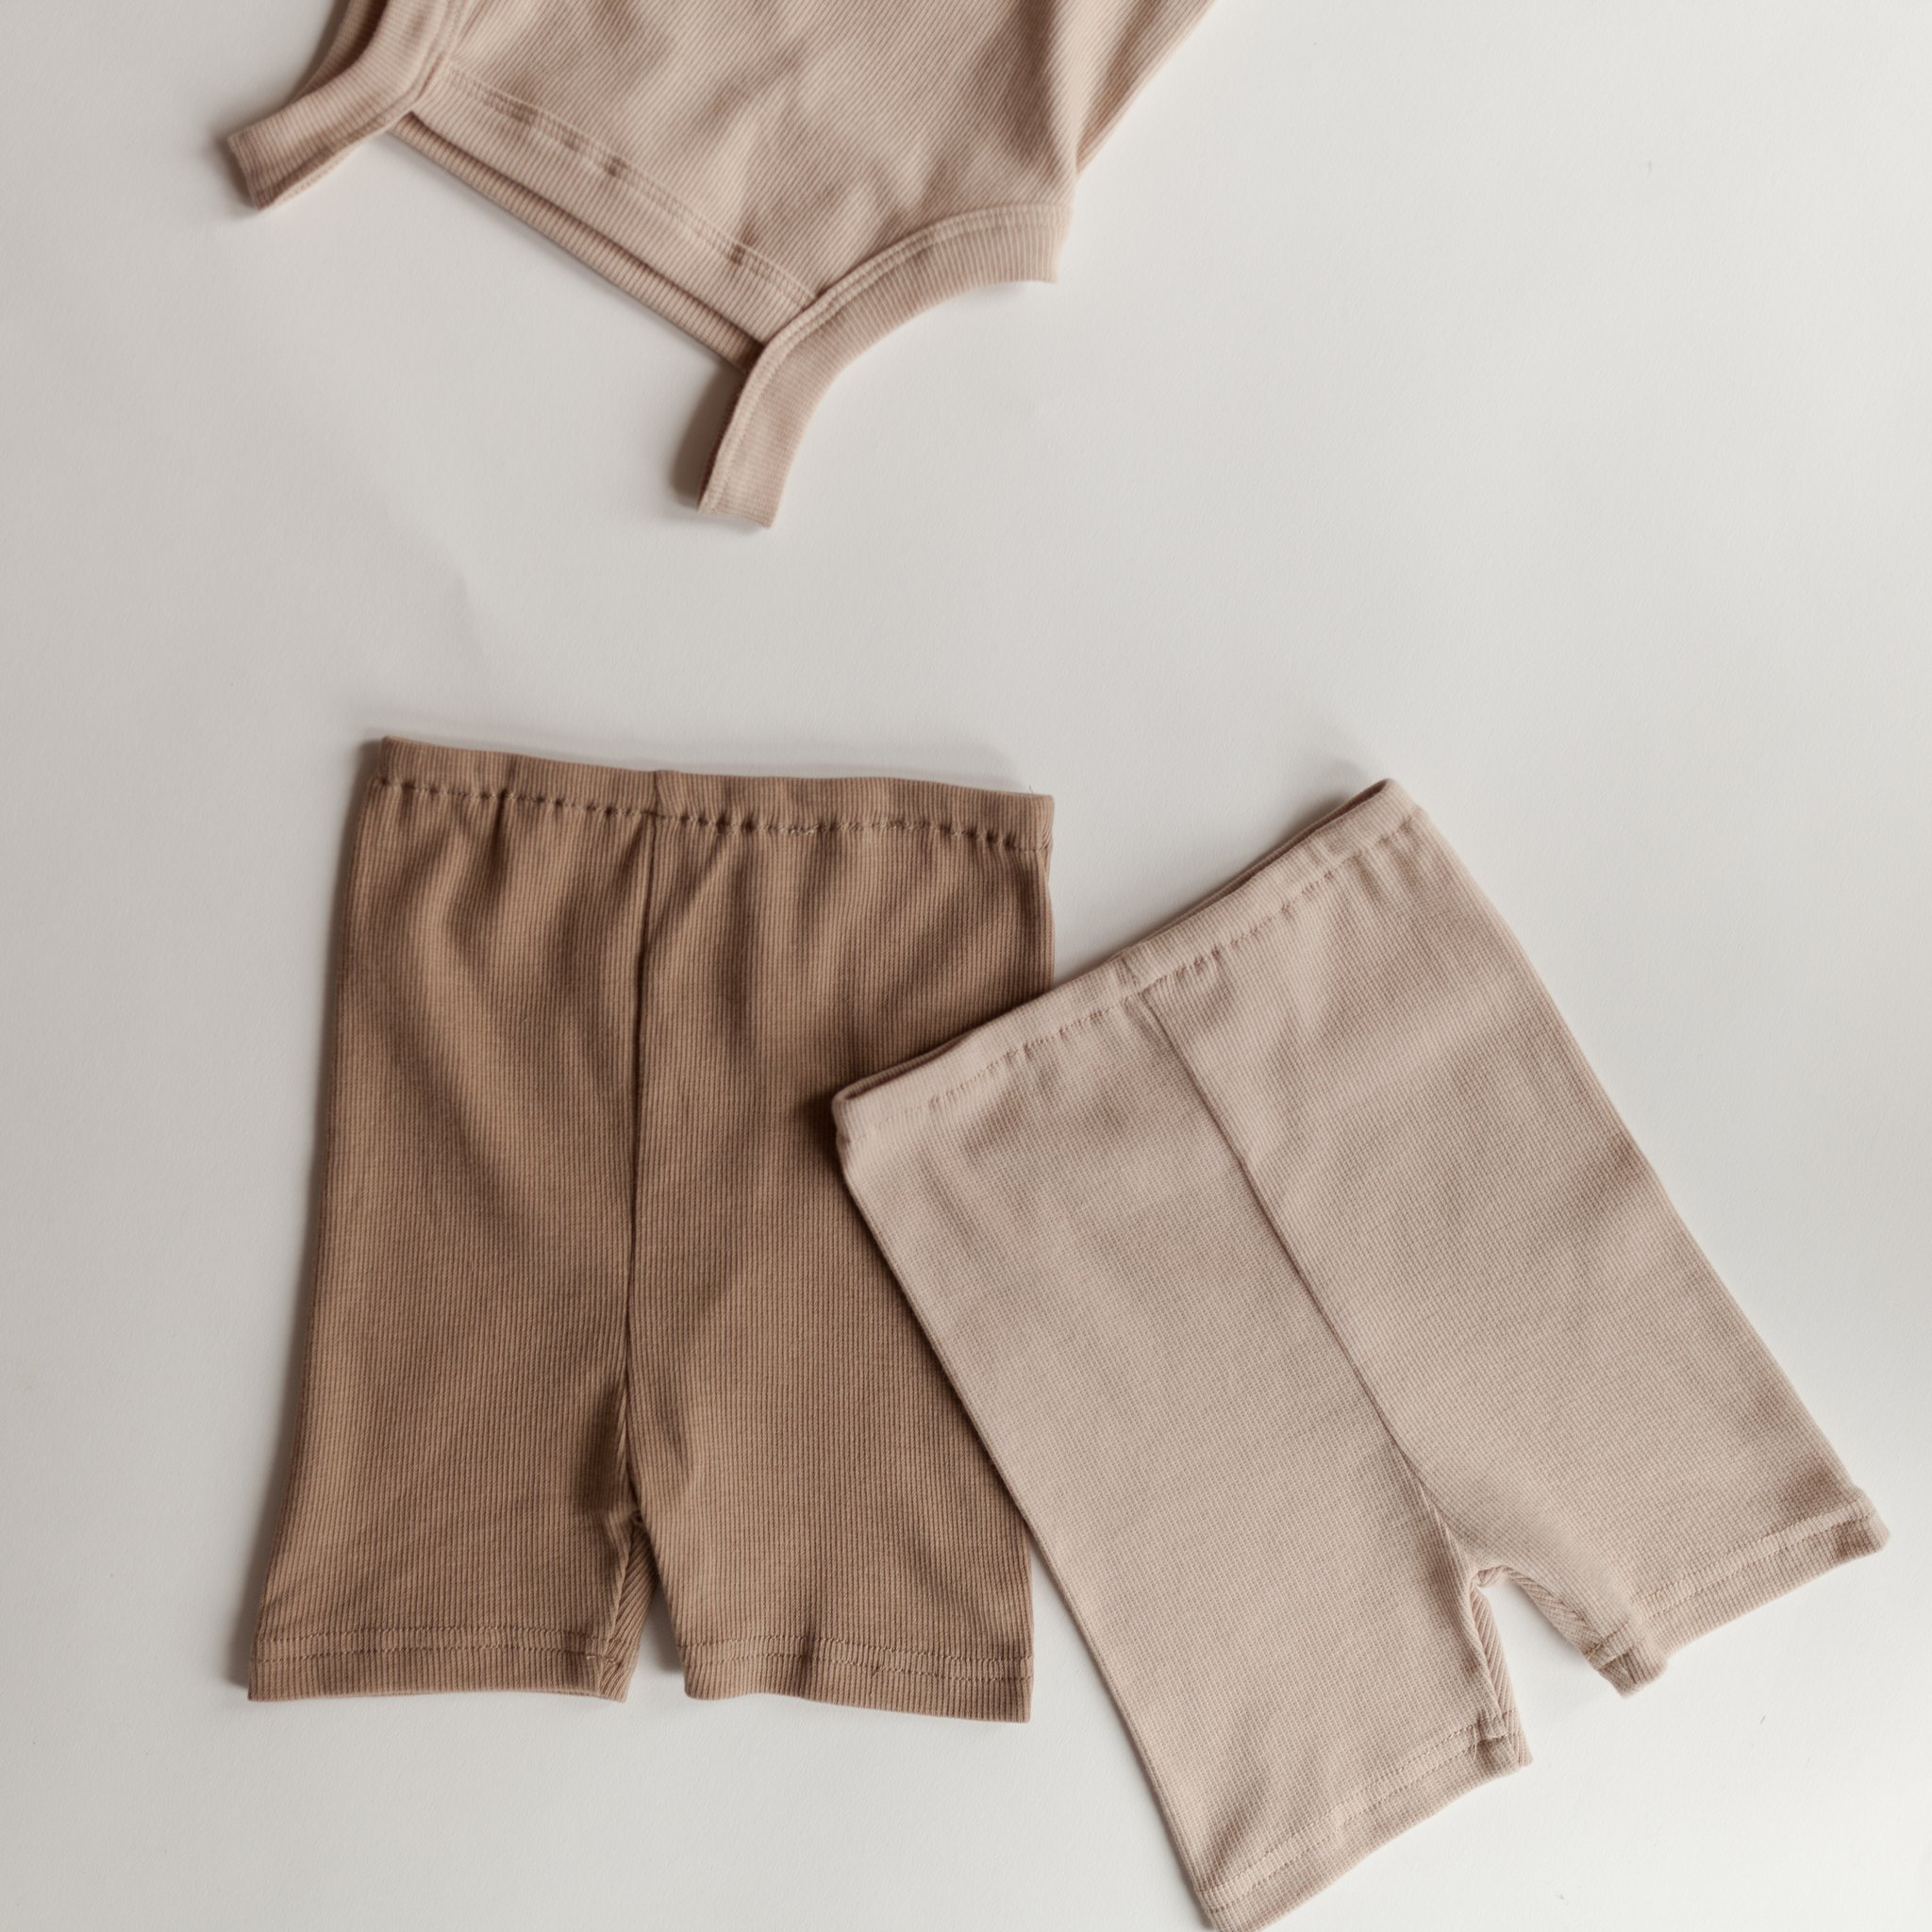 FIELDDAY Bikeshorts - Cappucino & Putty